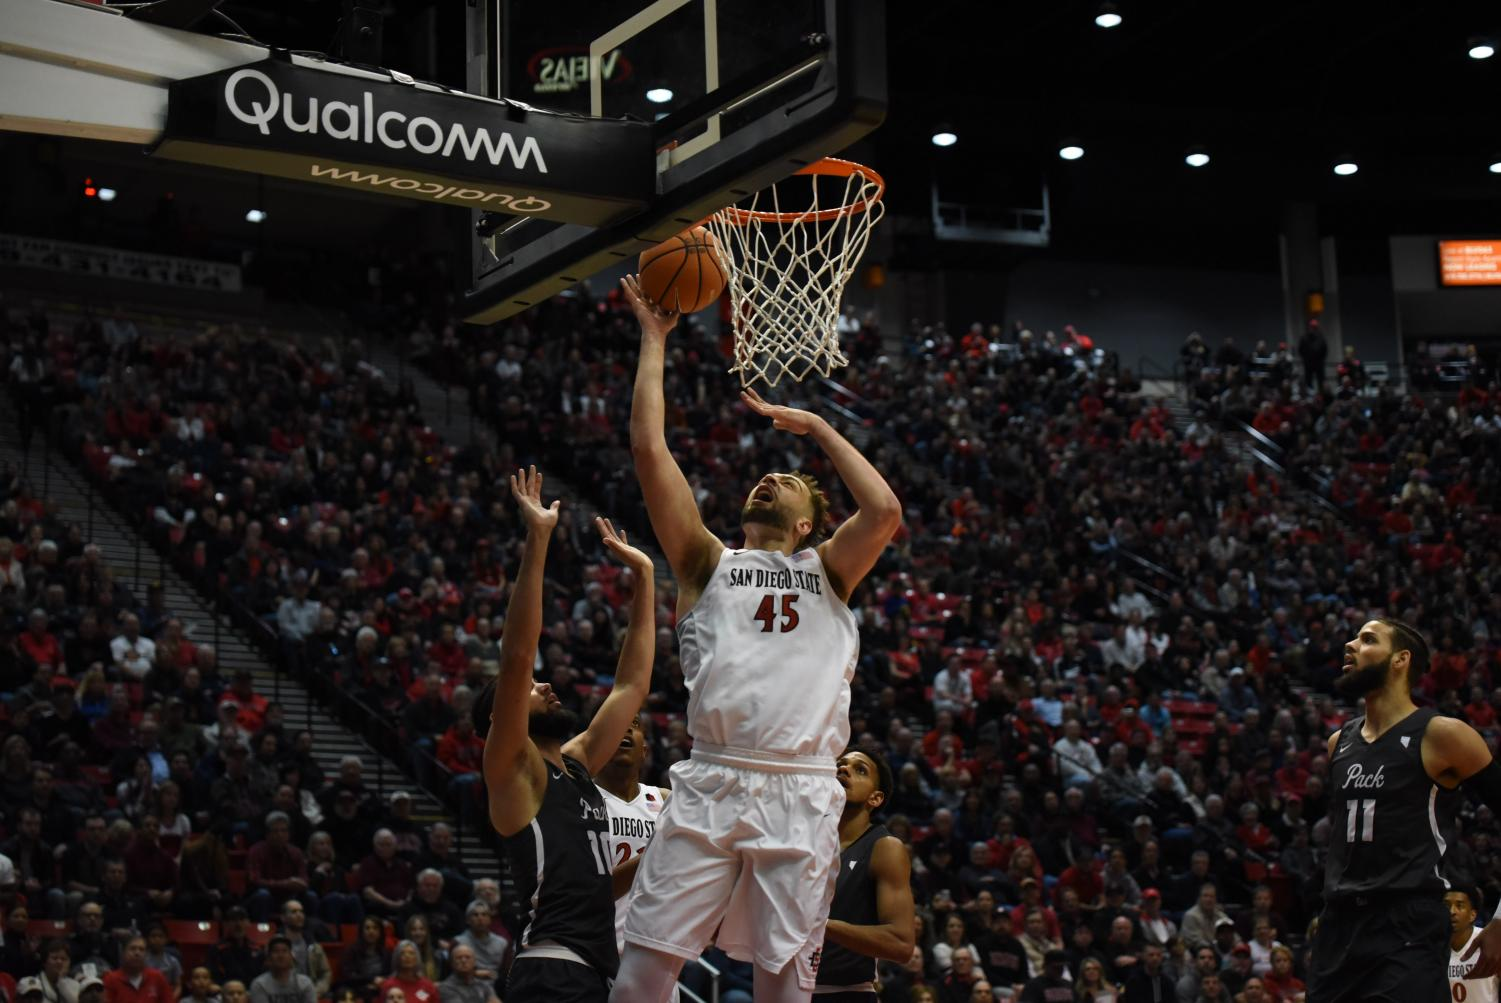 Senior center Kameron Rooks goes up for a layup during the Aztecs 79-74 victory over No. 21 Nevada on March 3 at Viejas Arena